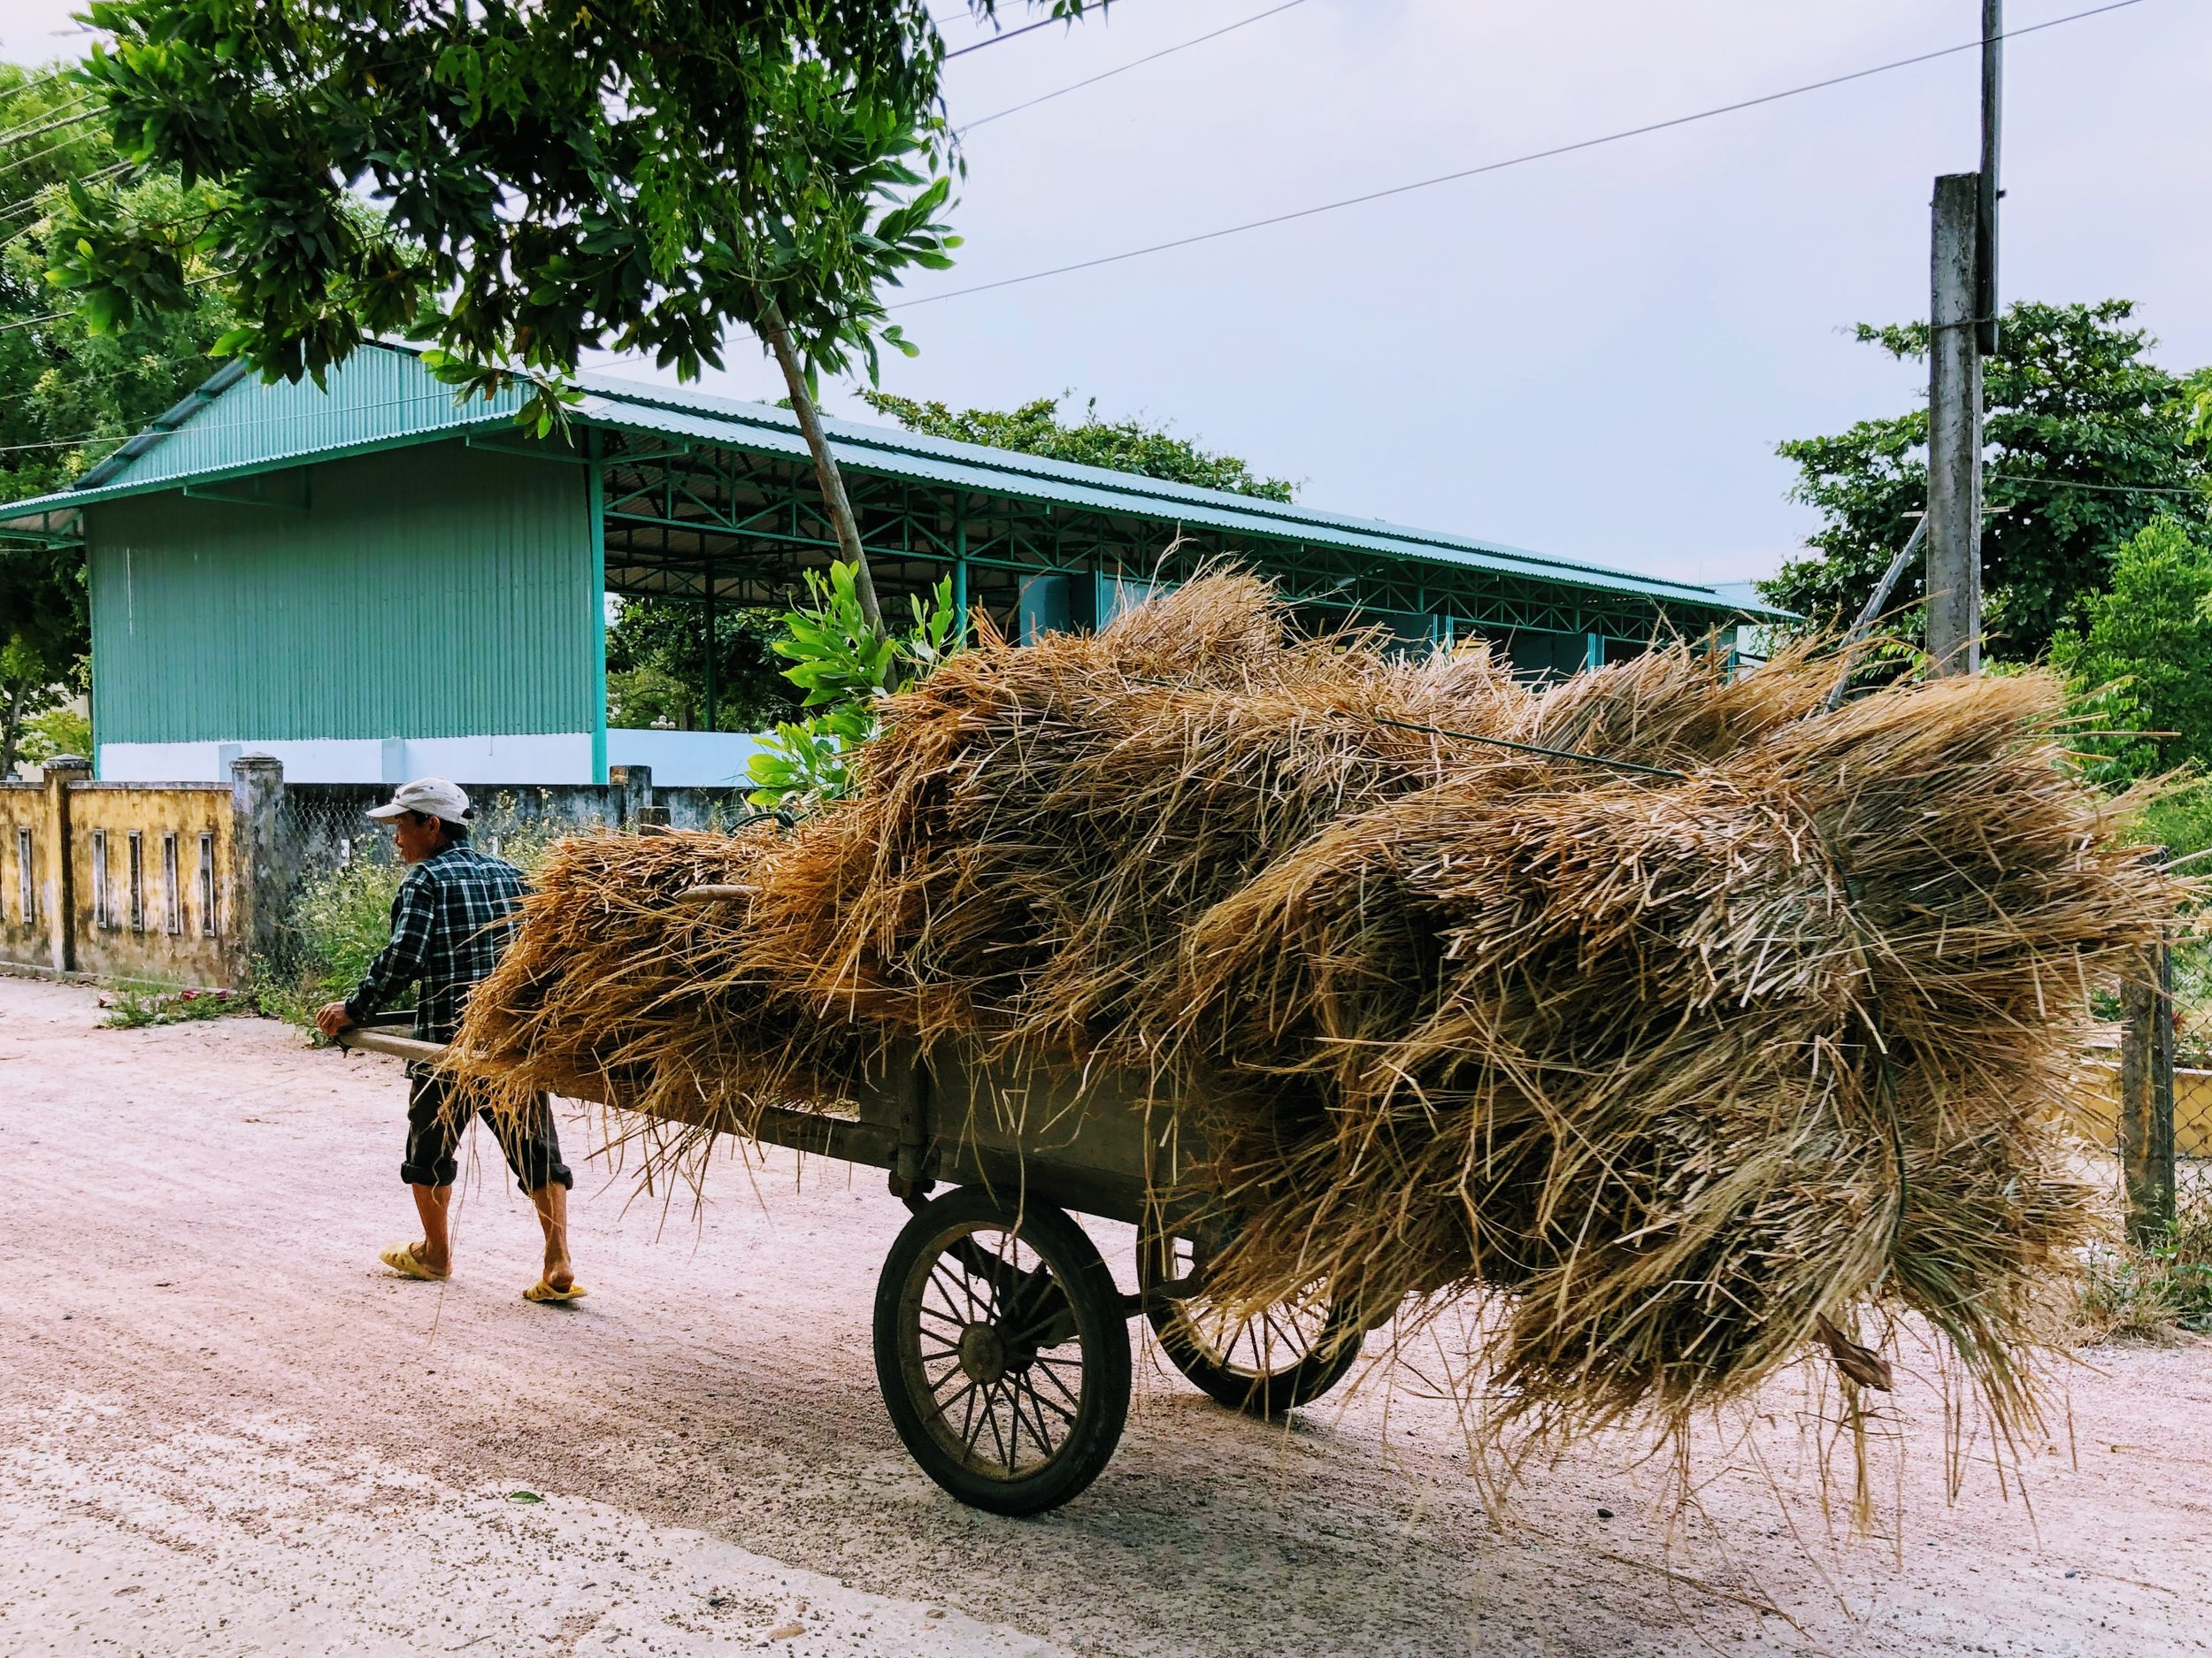 Hay to feed the local livestock, delivered on foot.